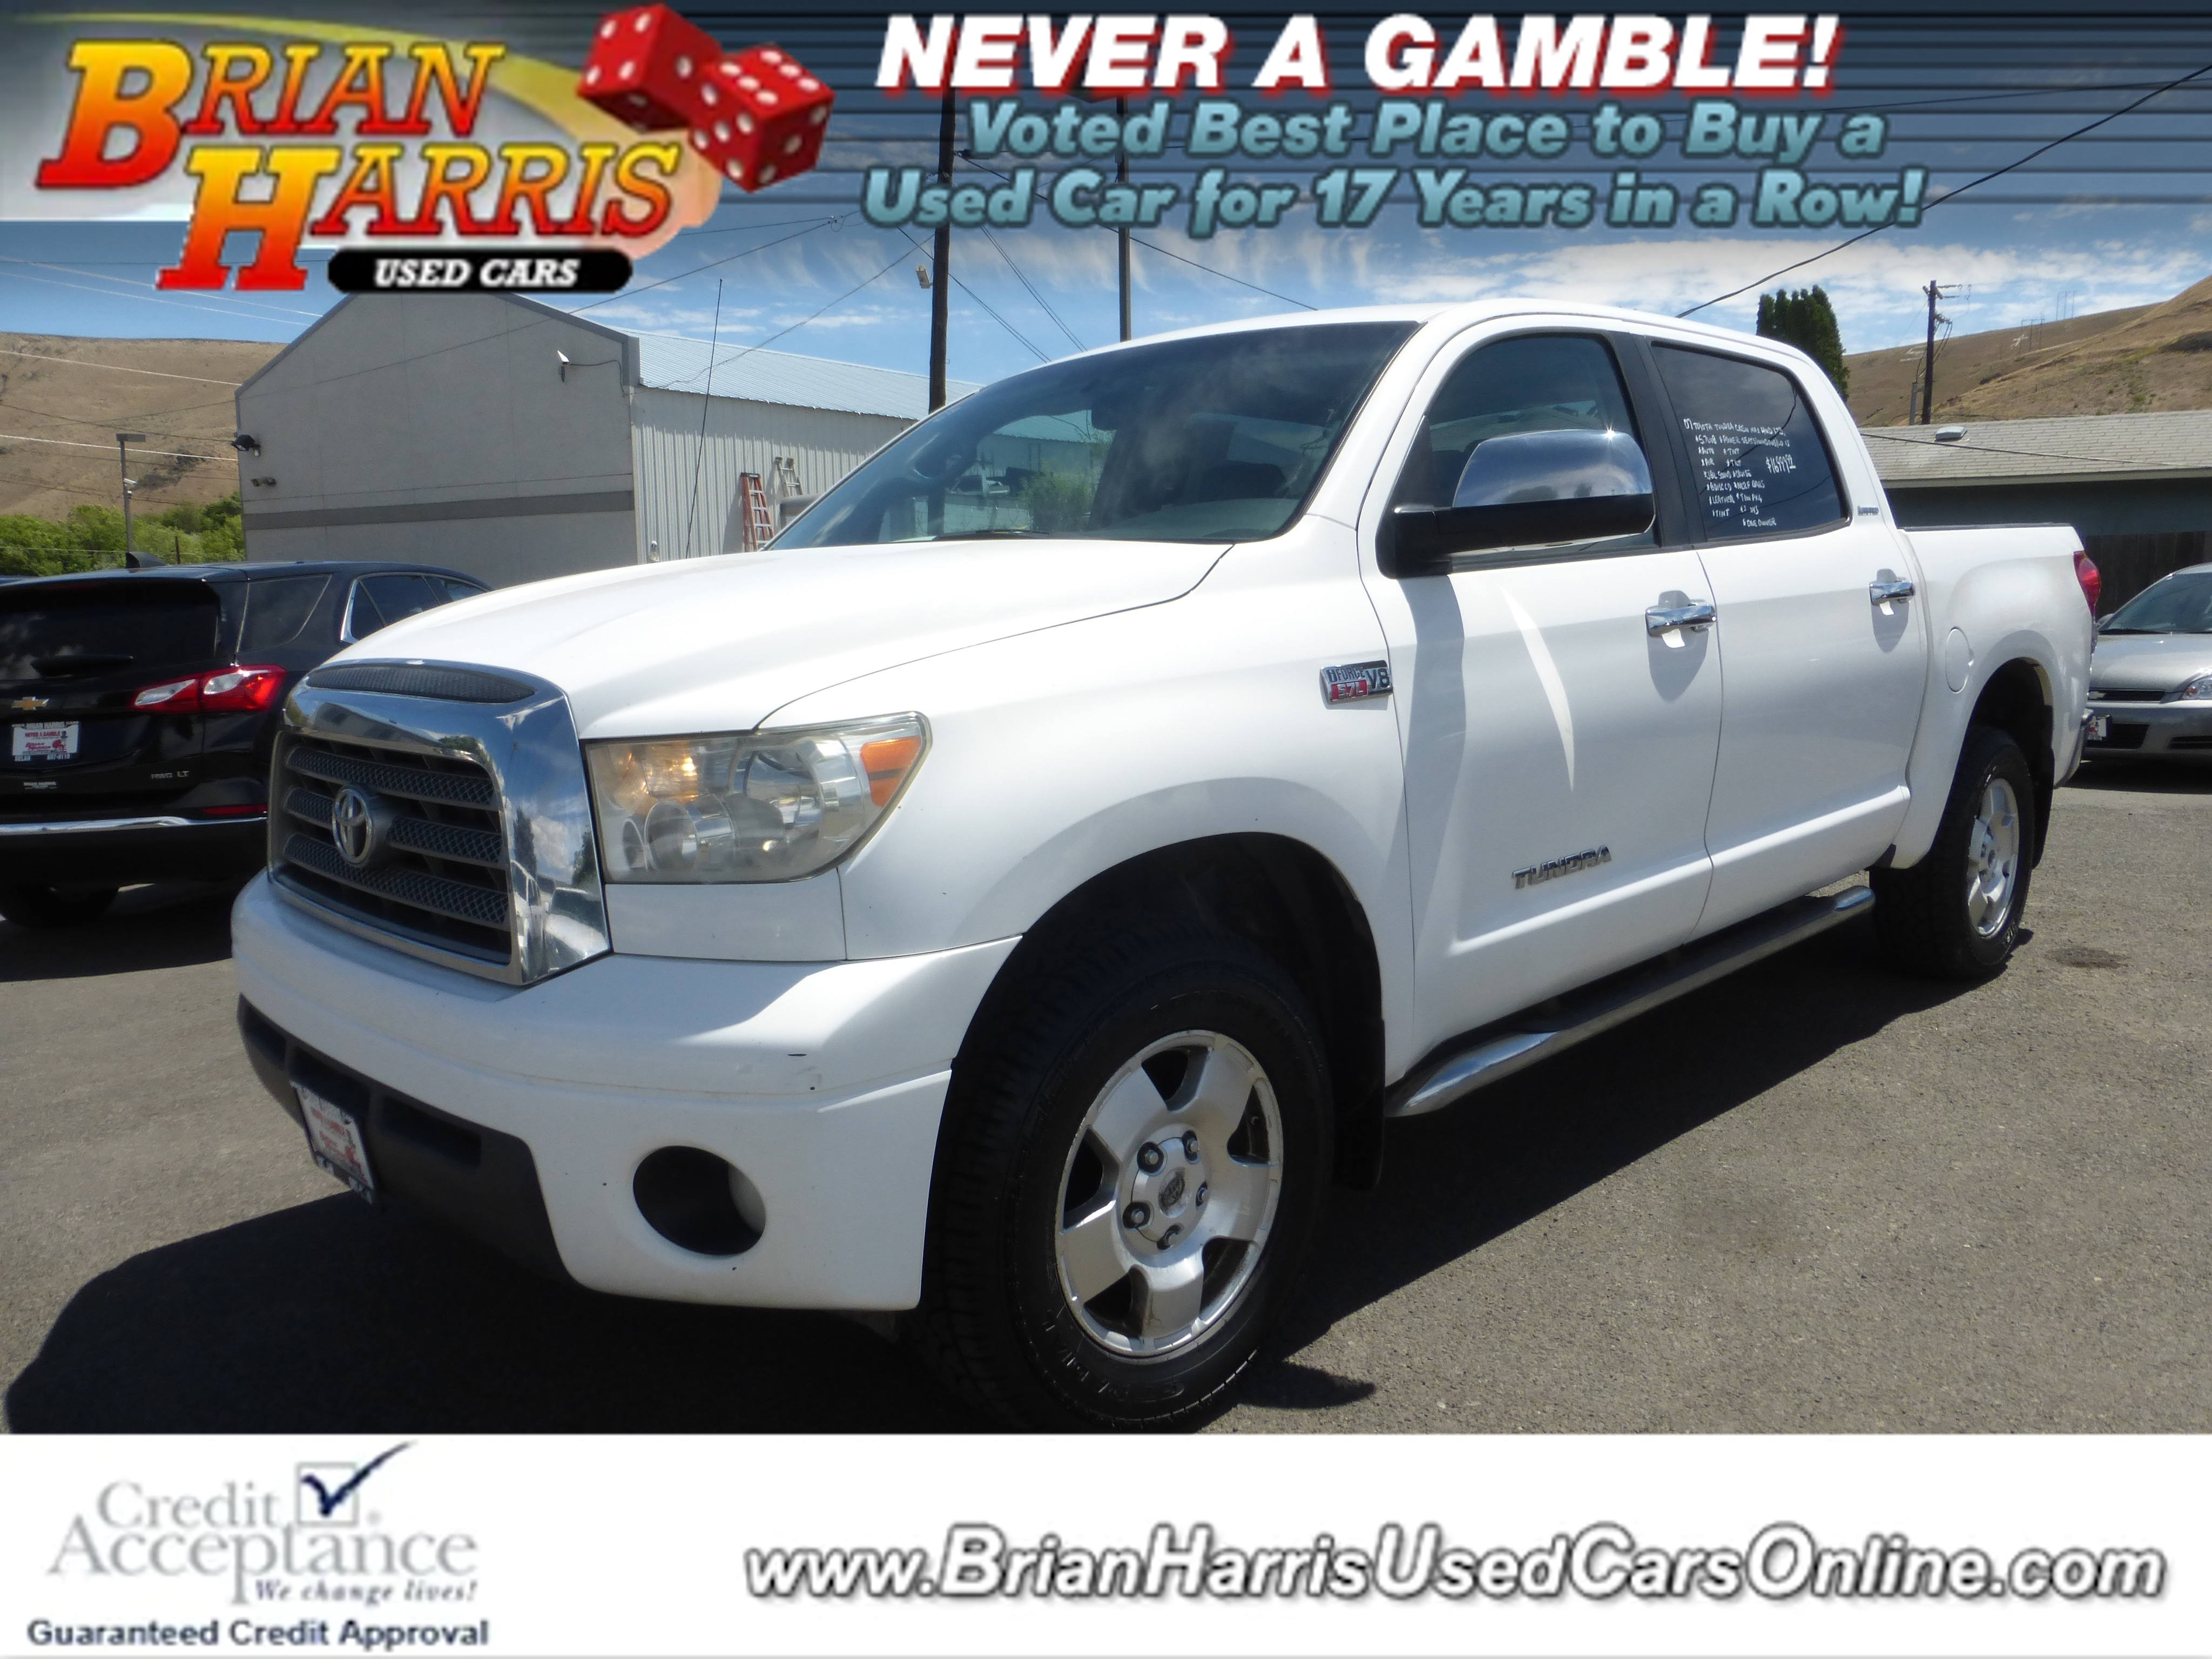 Used 2007 Toyota Tundra For Sale at Brian Harris Used Cars   VIN:  5tfdv58117x032096